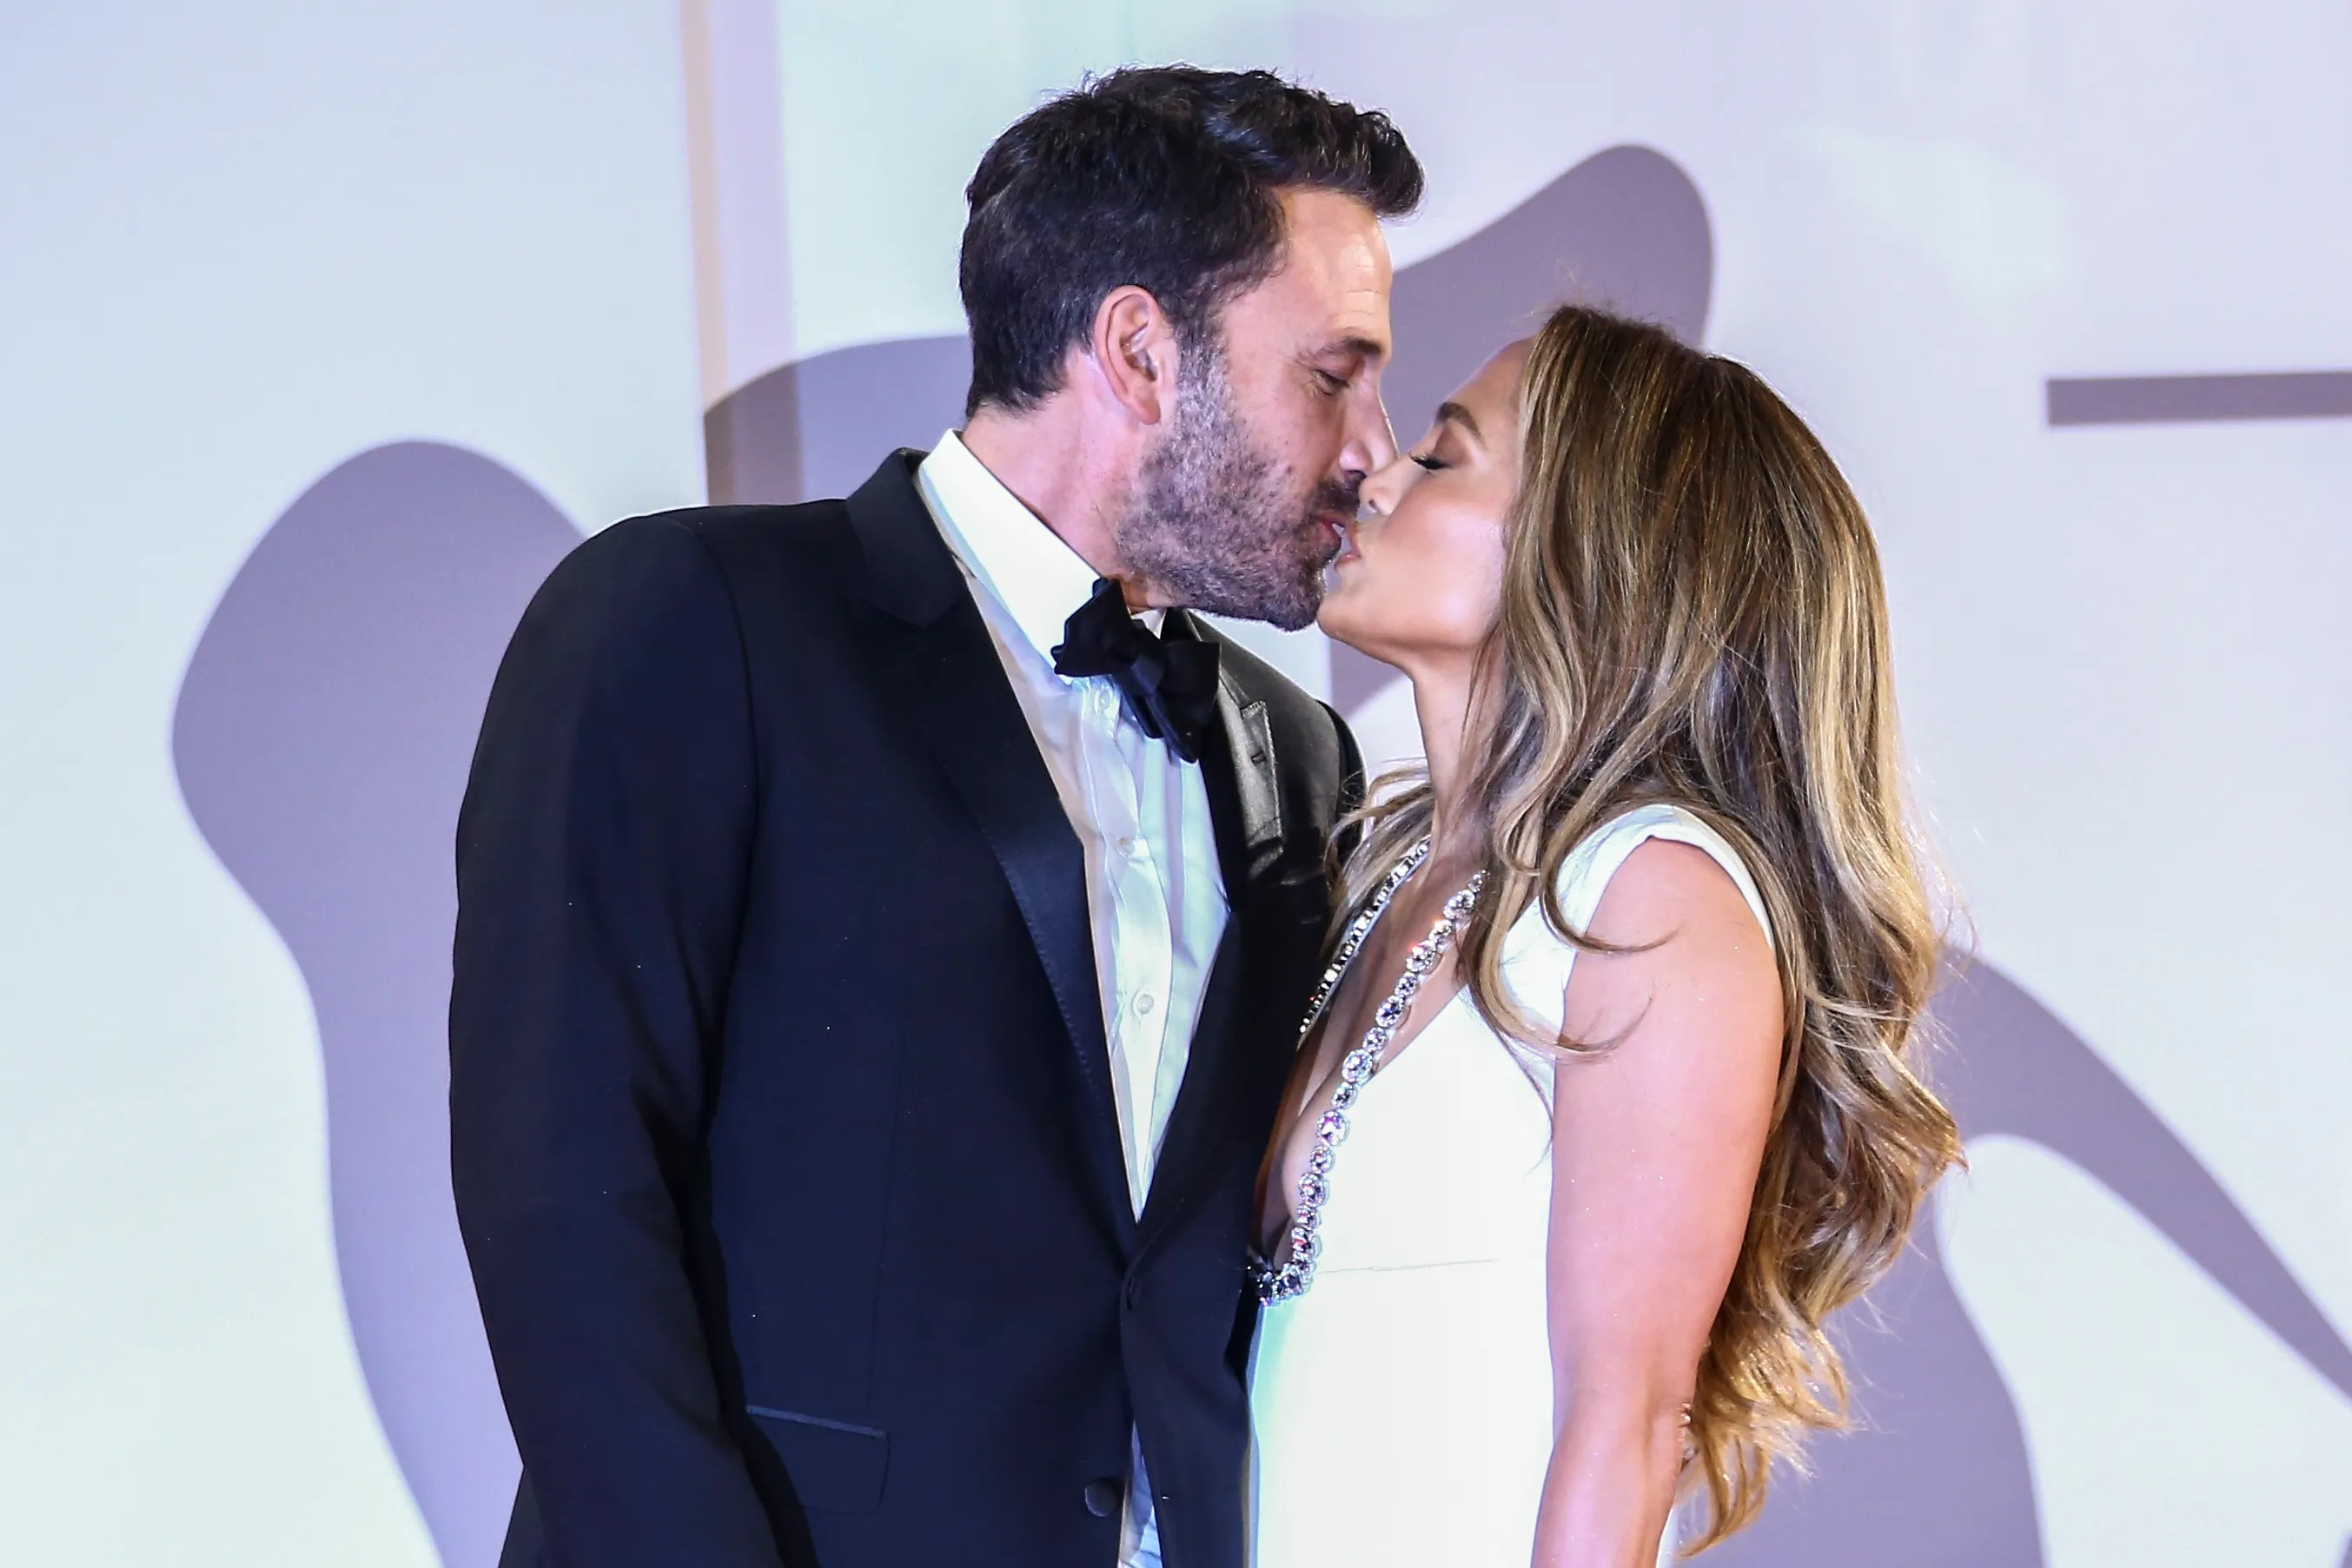 Jennifer Lopez and Ben Affleck kiss at the premiere of the film 'The Last Duel' during the Venice Film Festival in Venice, Italy on Sept. 10.